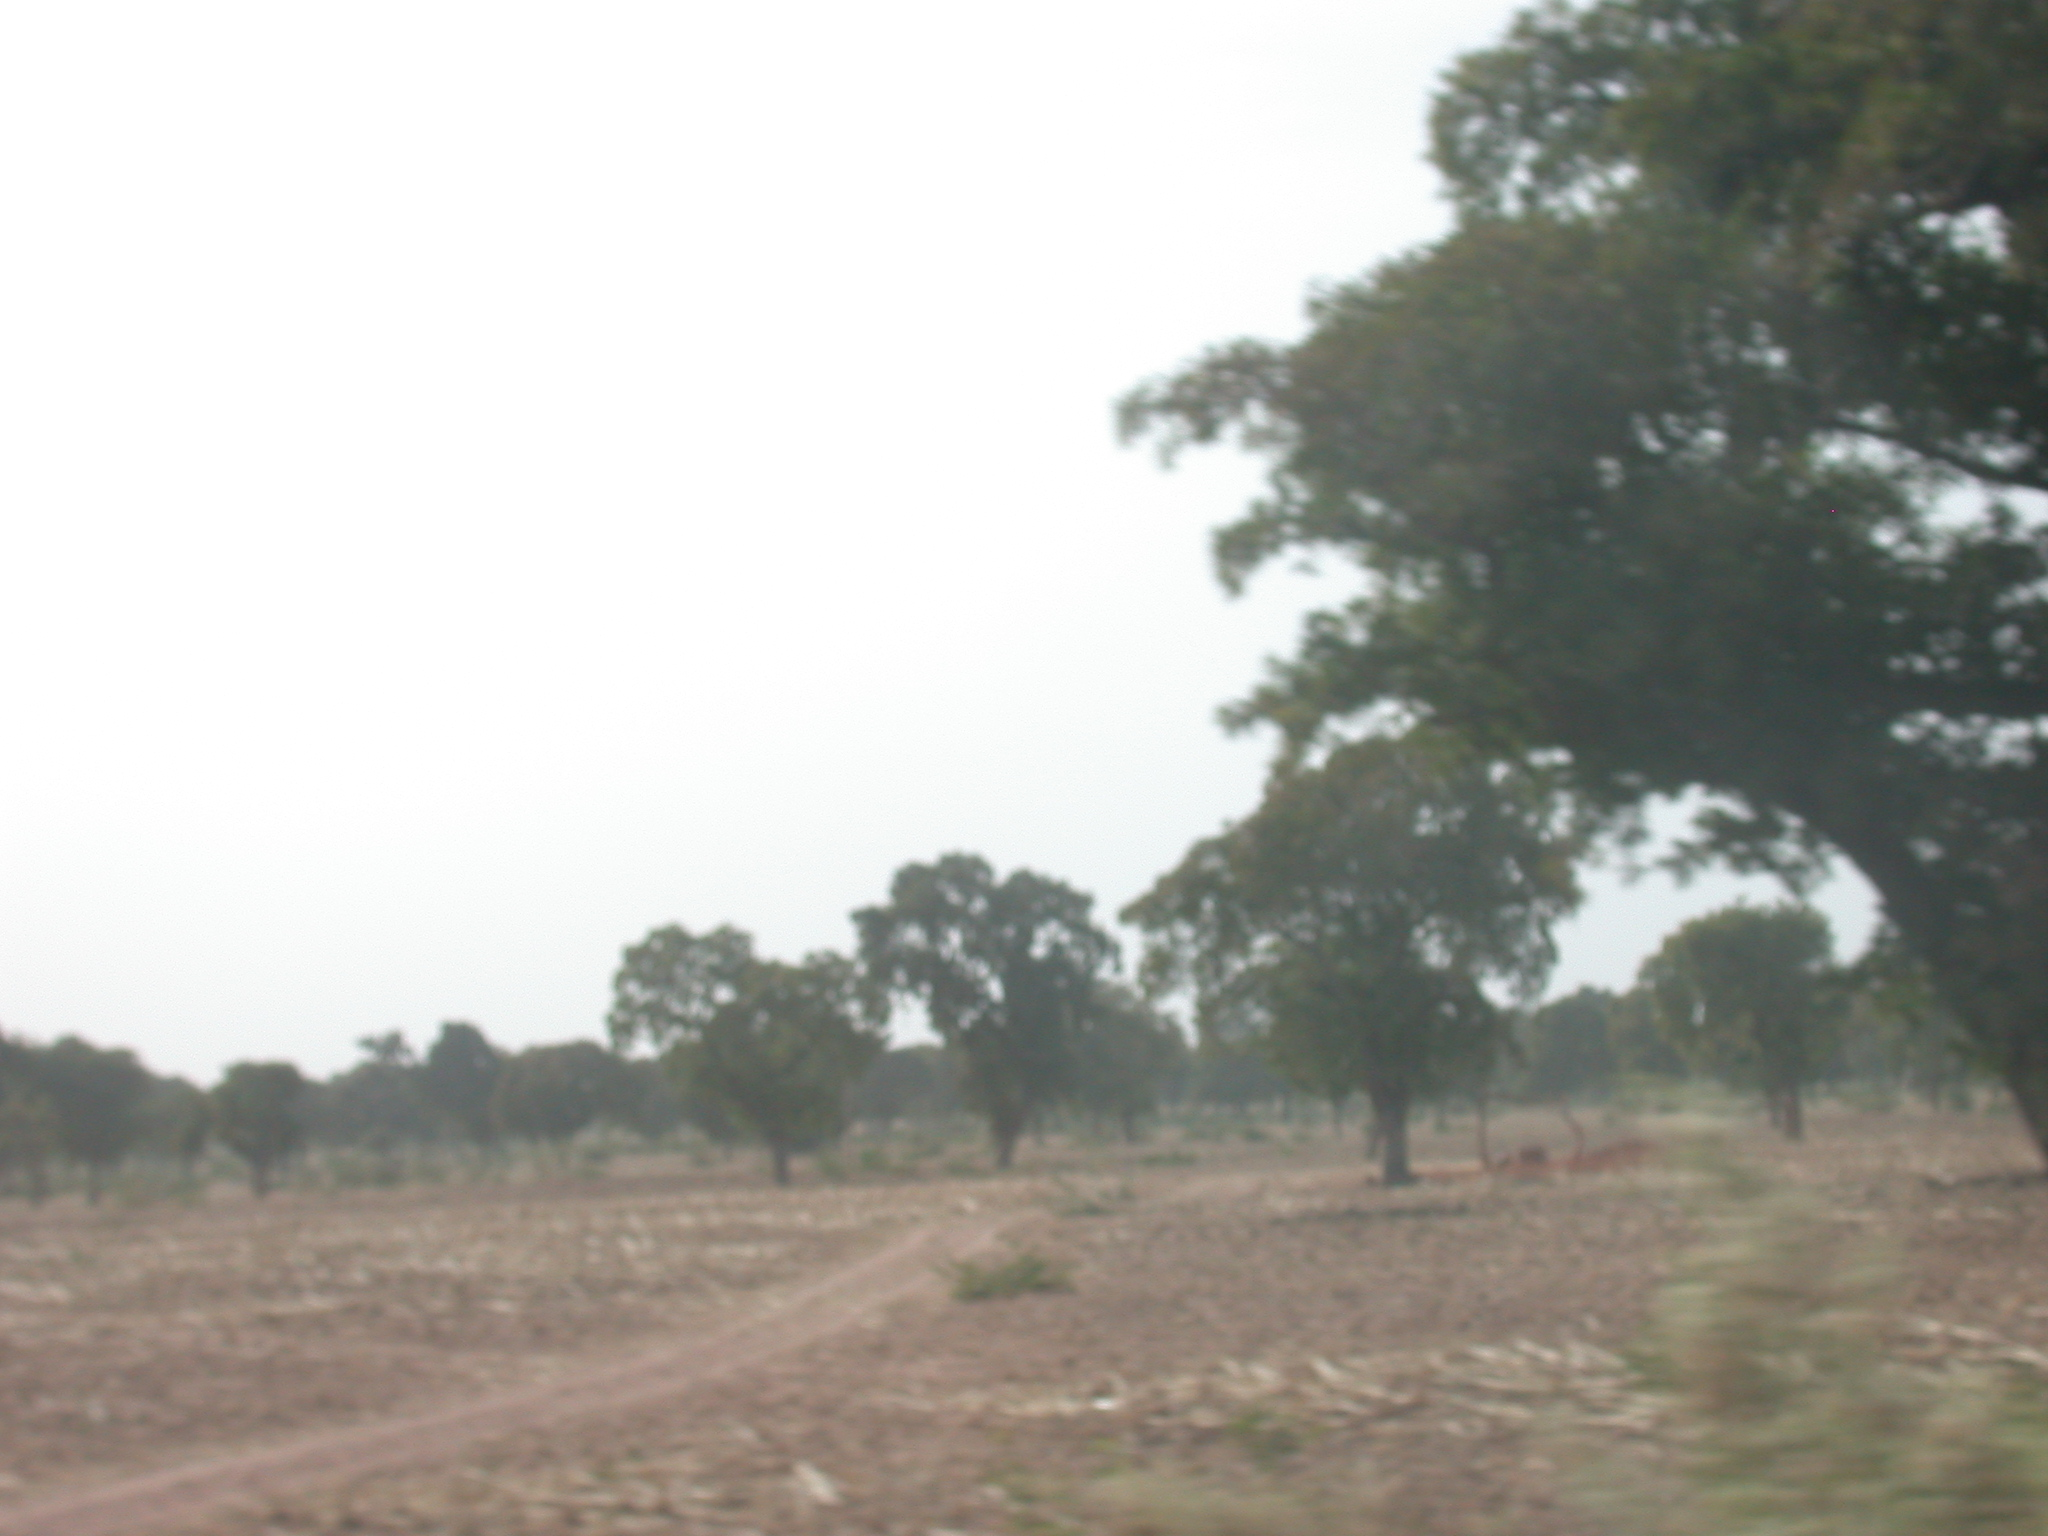 Landscape on Route From Bamako to Timbuktu, Mali